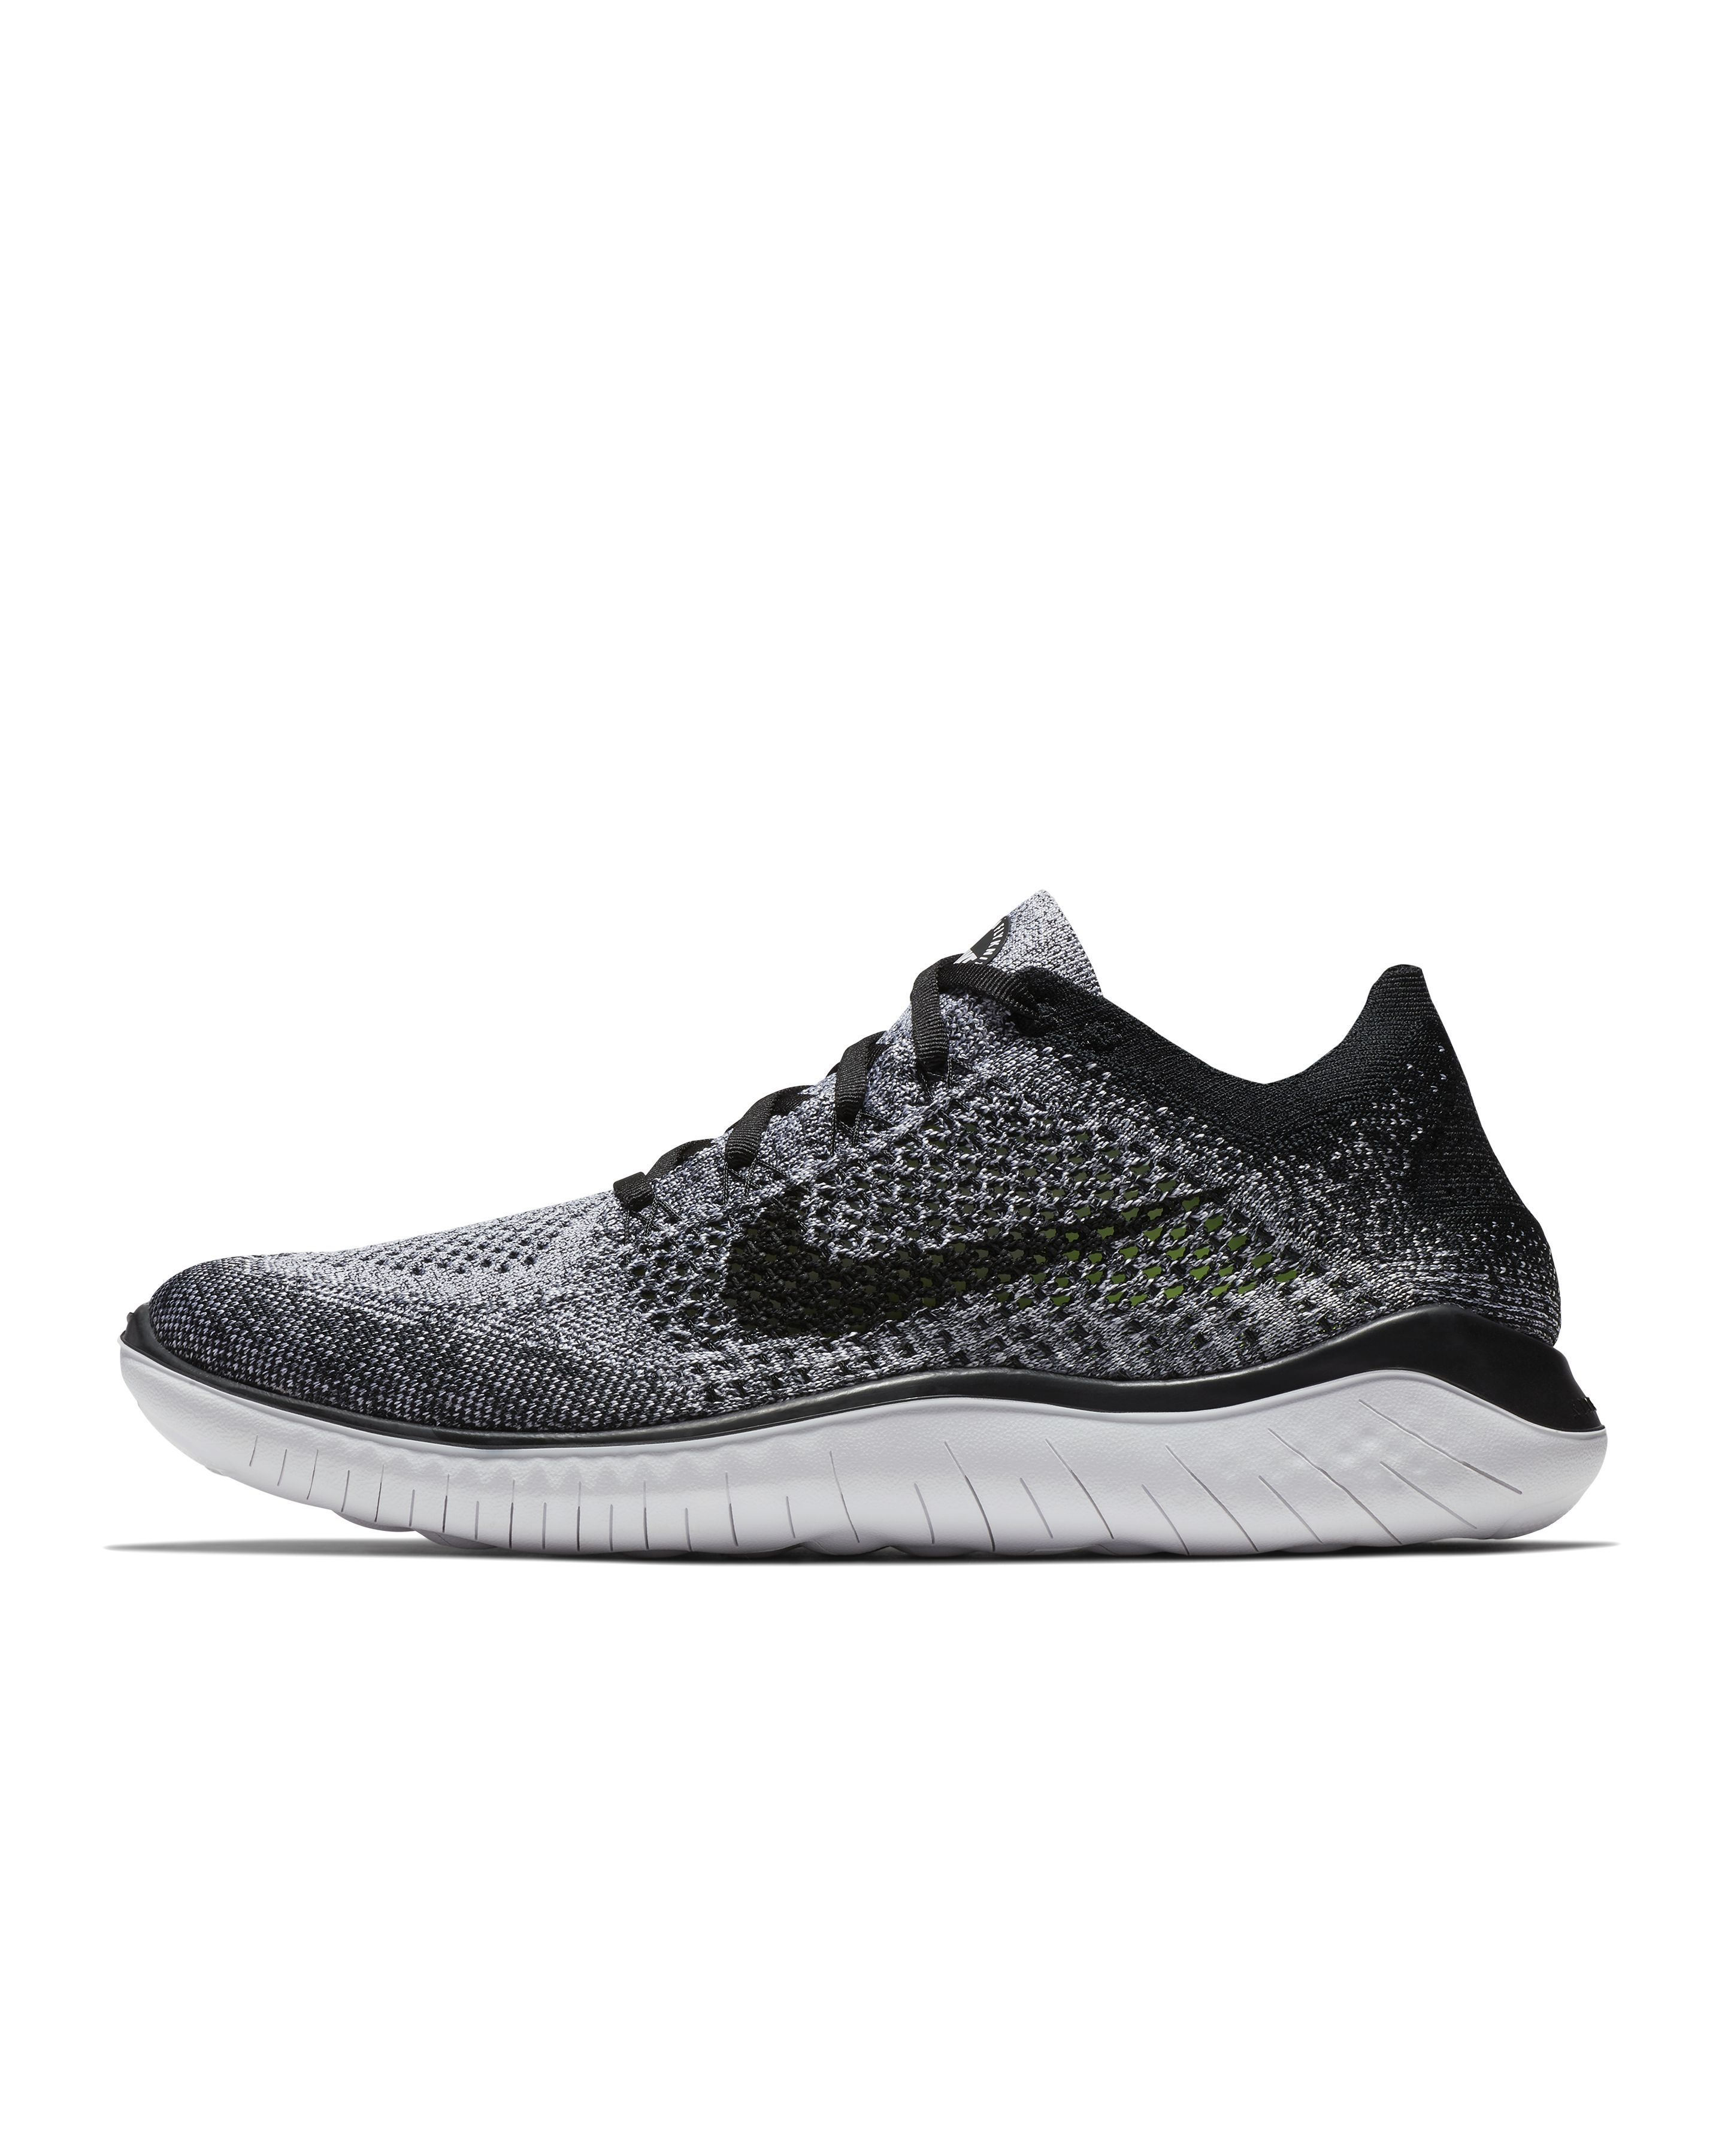 096f4917f546 Nike Shoe Sale — Deal on Nike Running Shoes April 2019